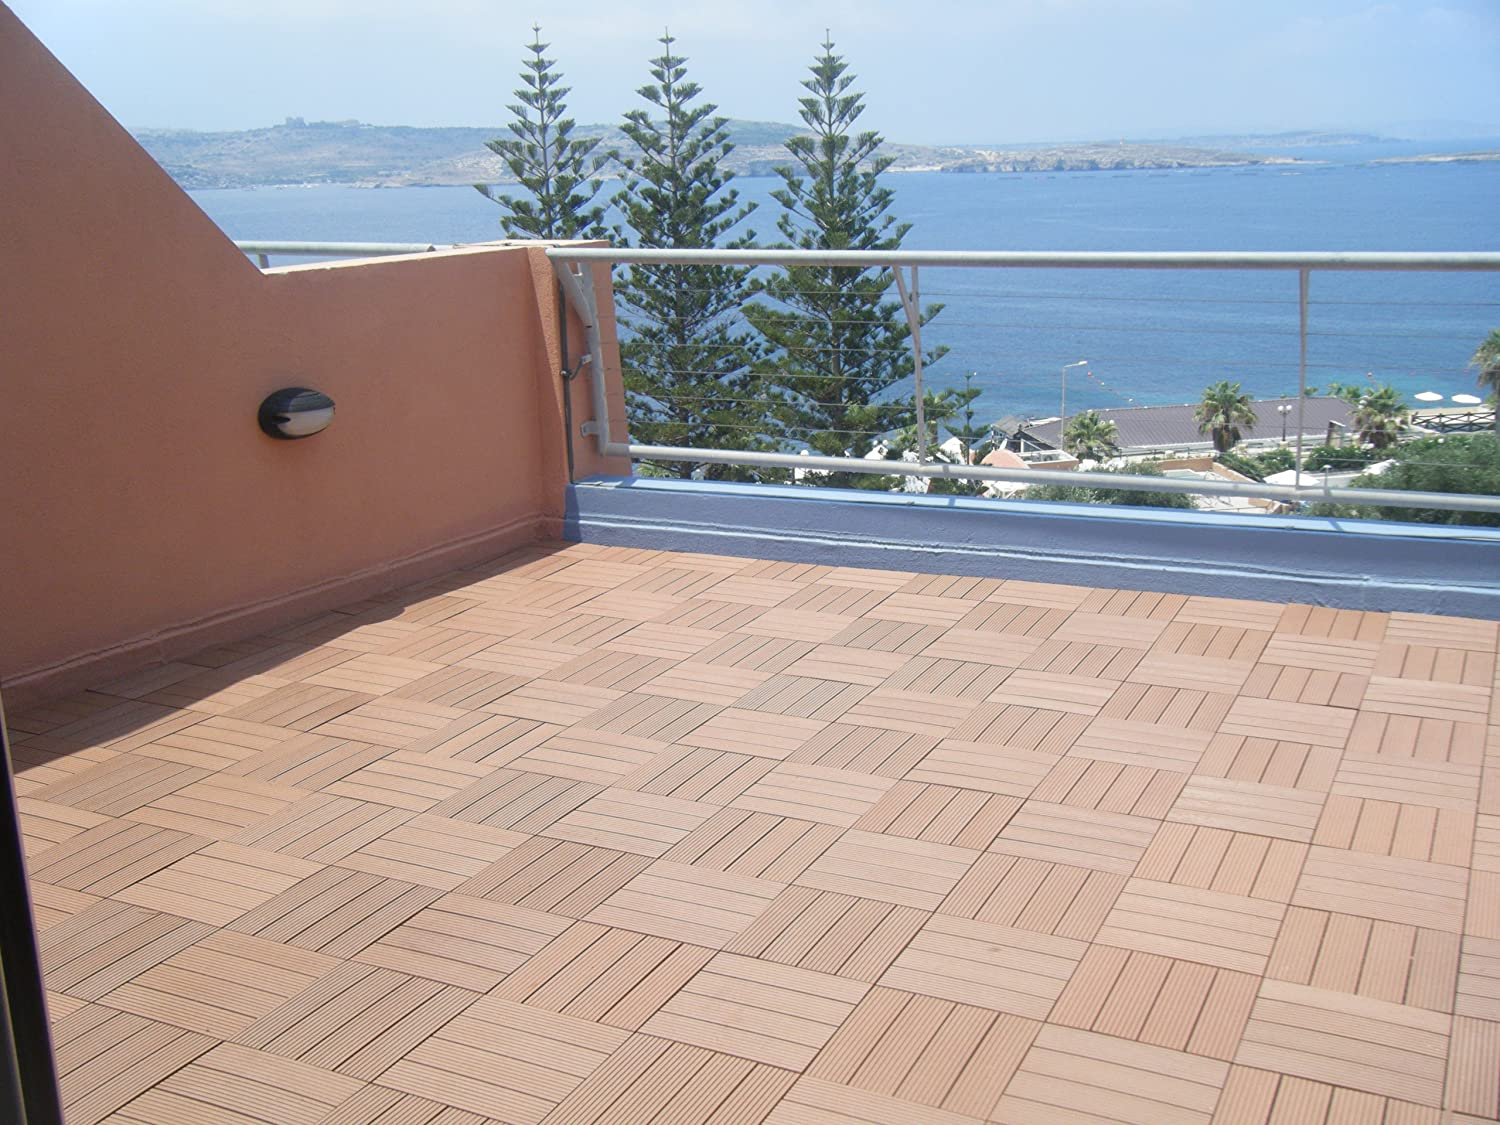 Naturesort n4 ot02 bamboo composite deck tile 4 piece ceramic naturesort n4 ot02 bamboo composite deck tile 4 piece ceramic tiles amazon baanklon Image collections